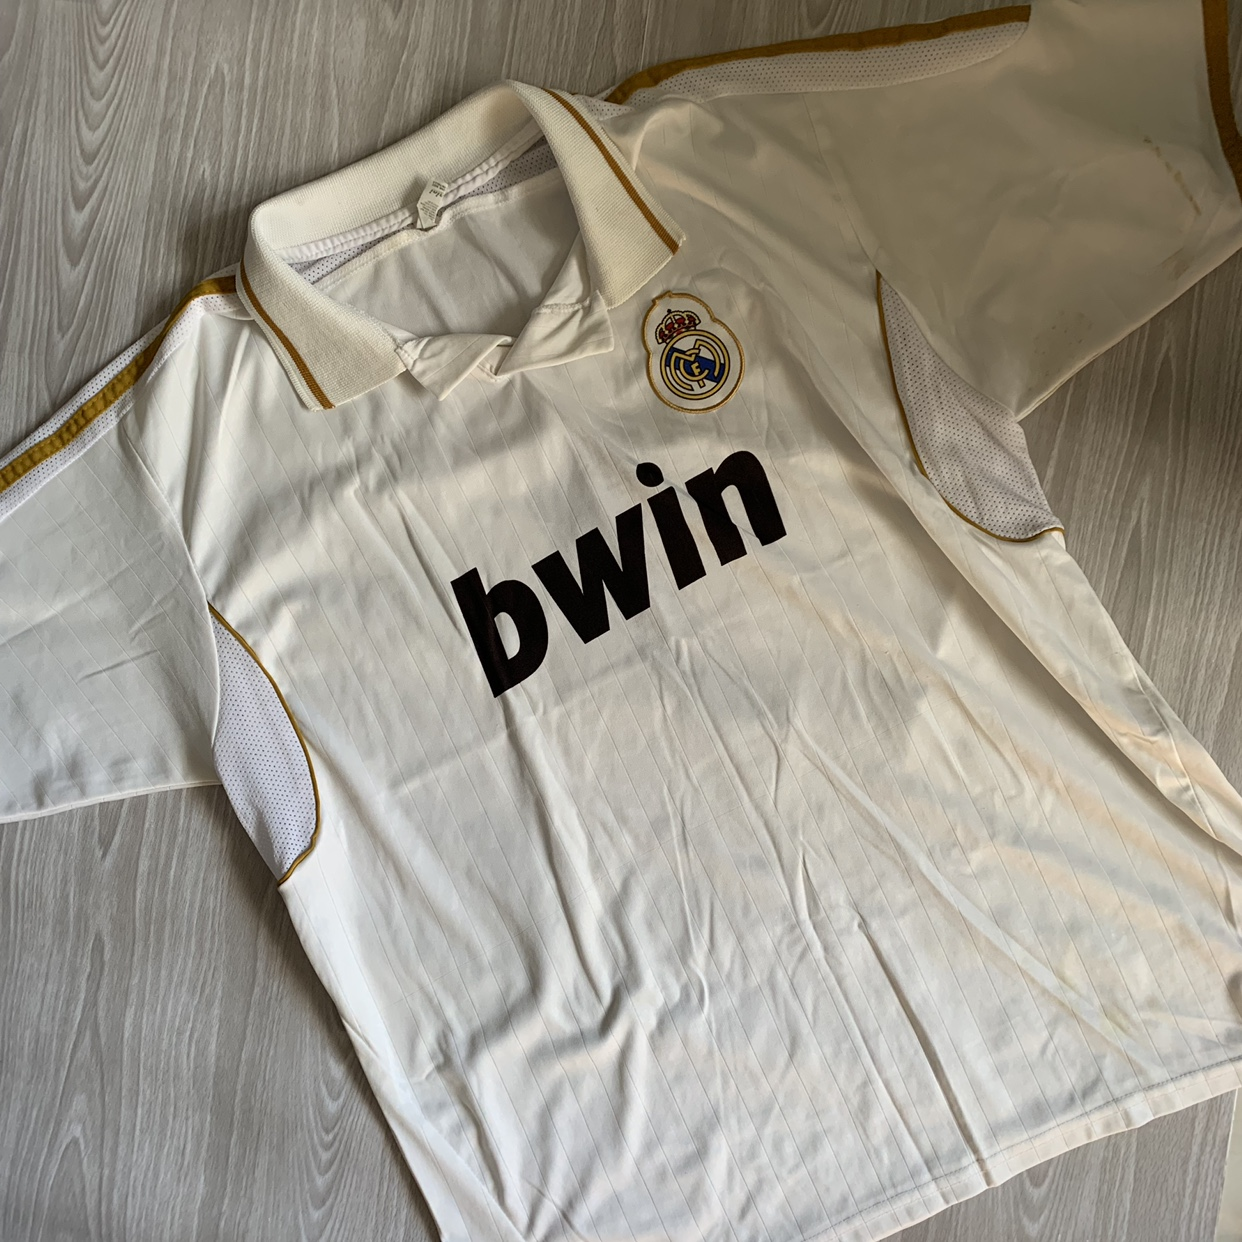 finest selection 238e9 51236 Real Madrid Bwin Jersey L/XL IF YOU BUNDLE ITEMS I... - Depop